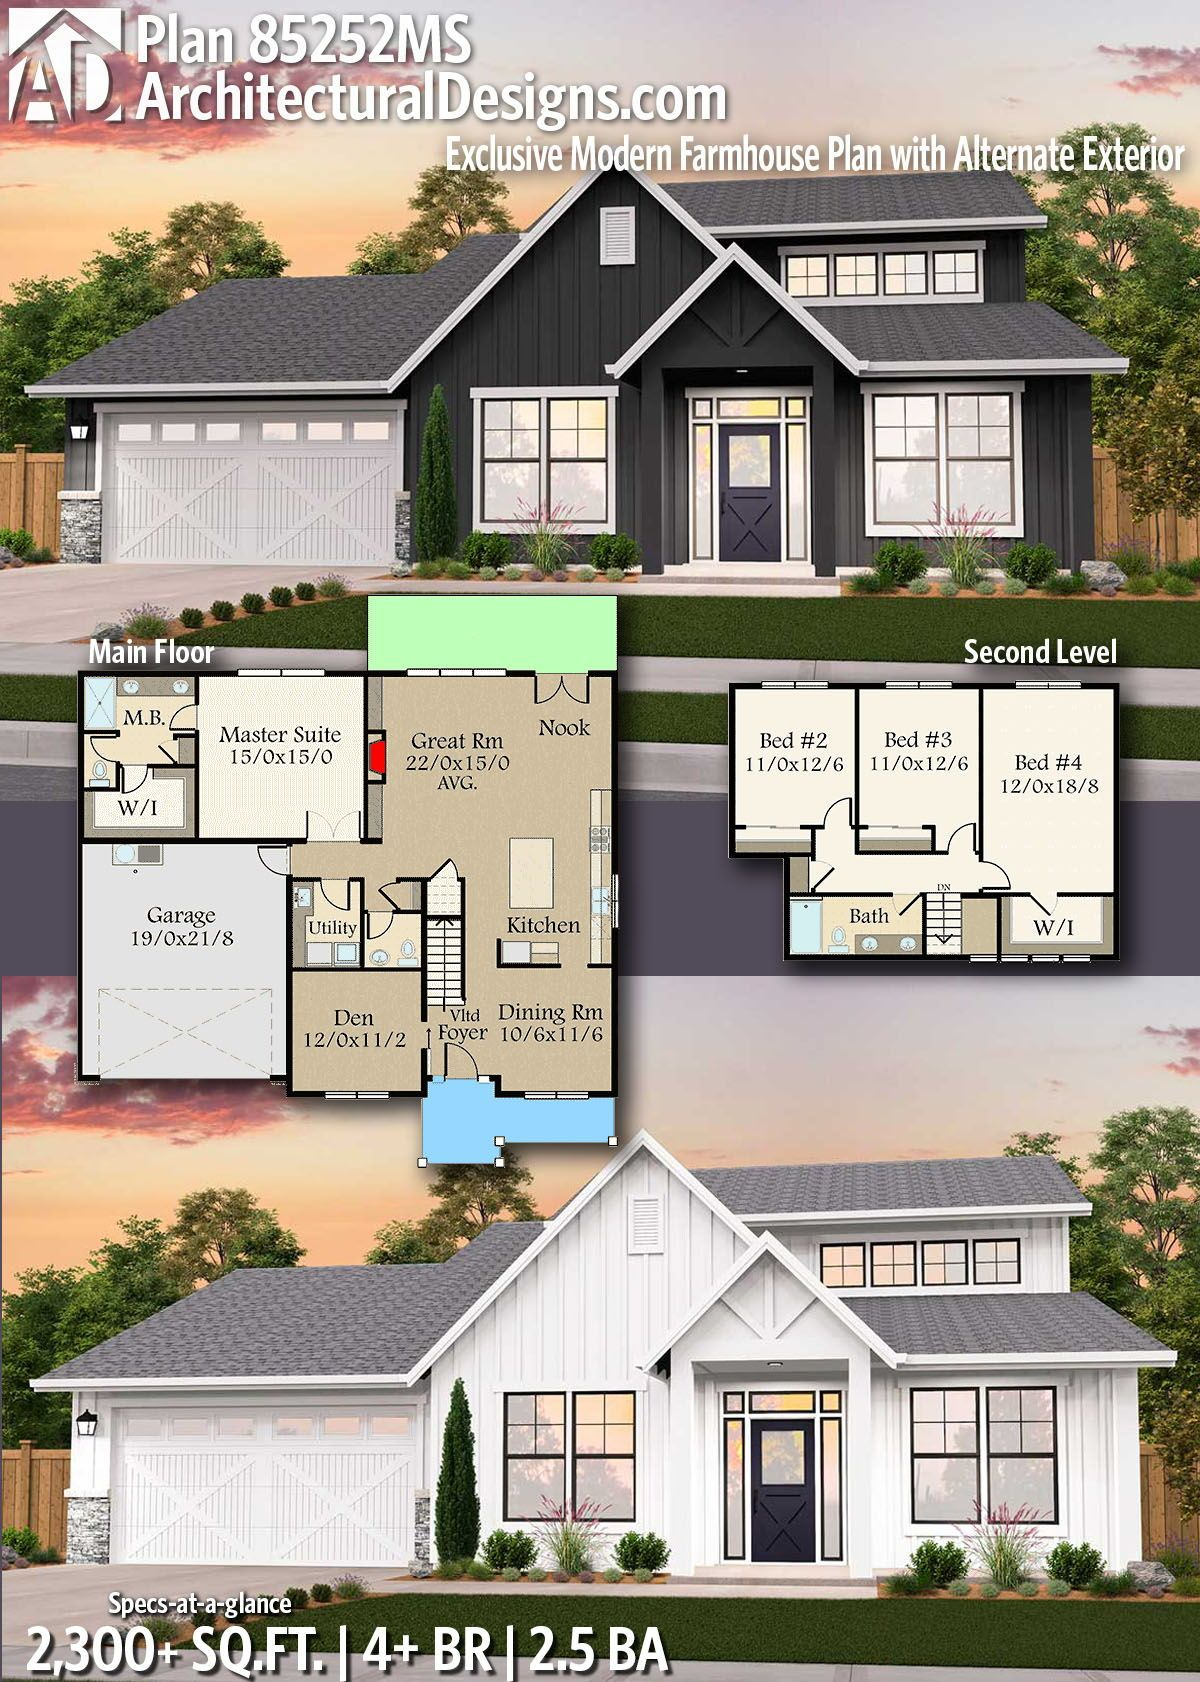 Plan 85252ms Exclusive New American House Plan With Alternate Exterior House Plans Farmhouse Modern Farmhouse Plans Country House Plans